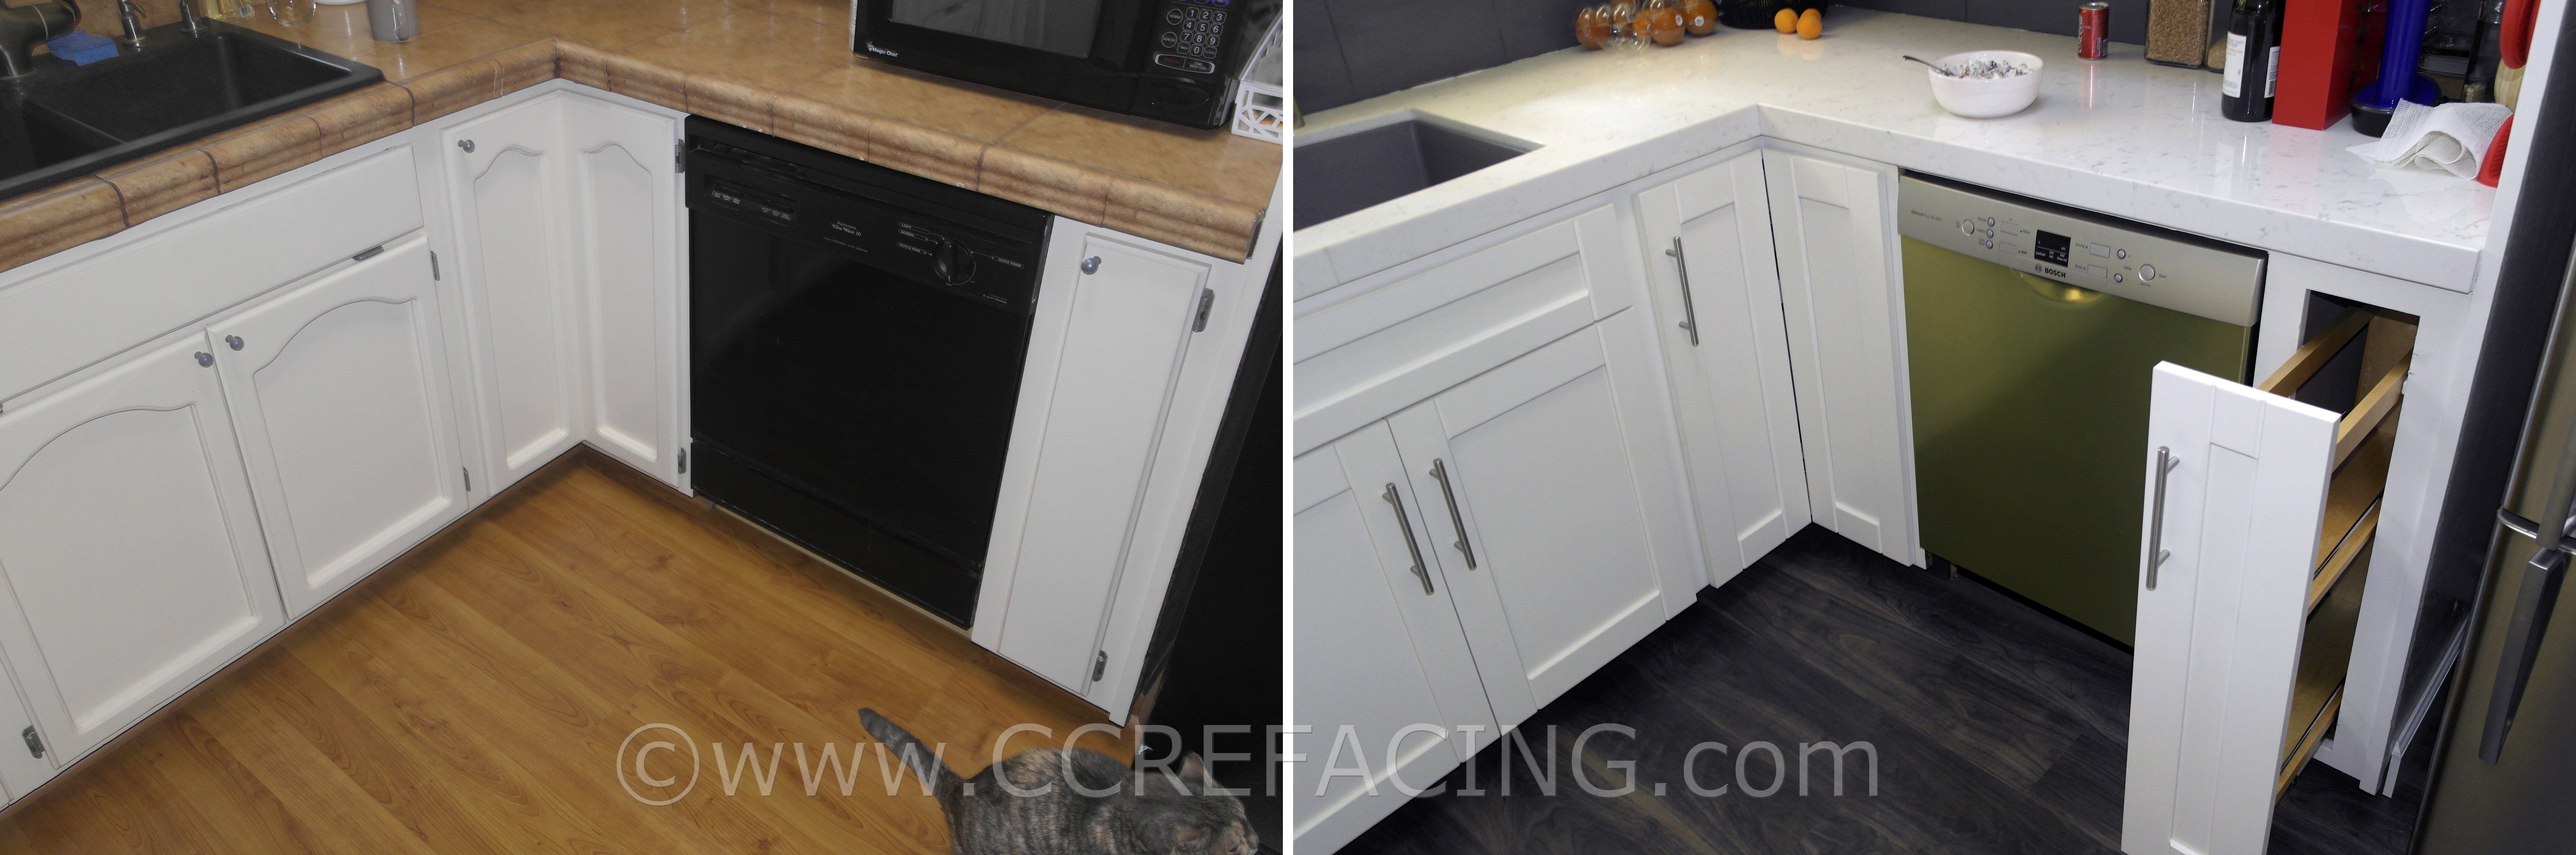 San Leandro Reface Refacing With White Shaker Cabinet Doors White Shaker Cabinets Shaker Cabinet Doors Cabinet Refacing